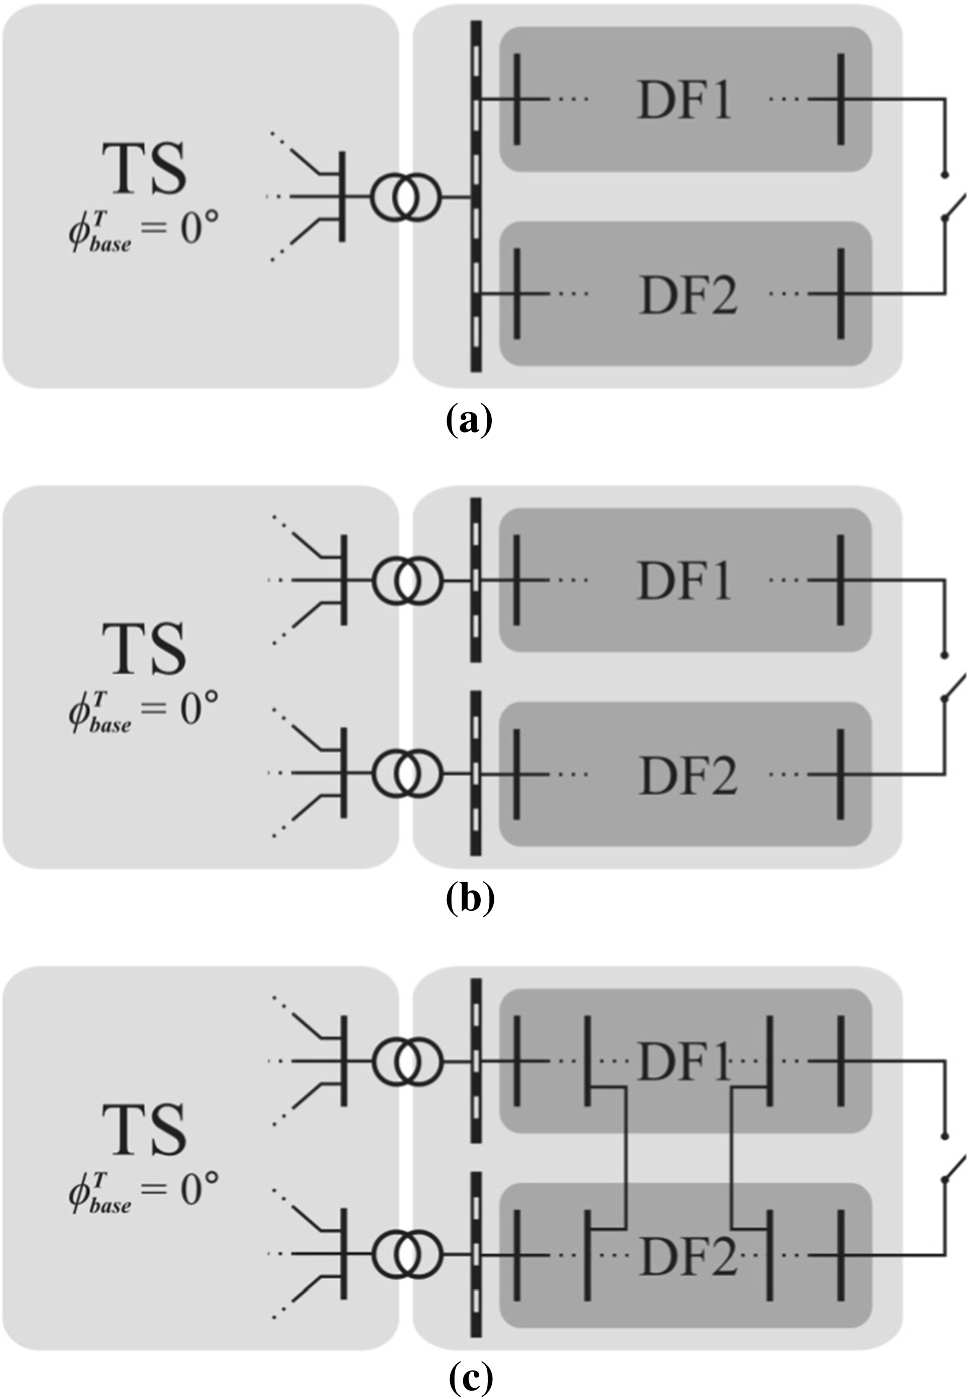 Unified Transmission and Distribution Fast Decoupled Power